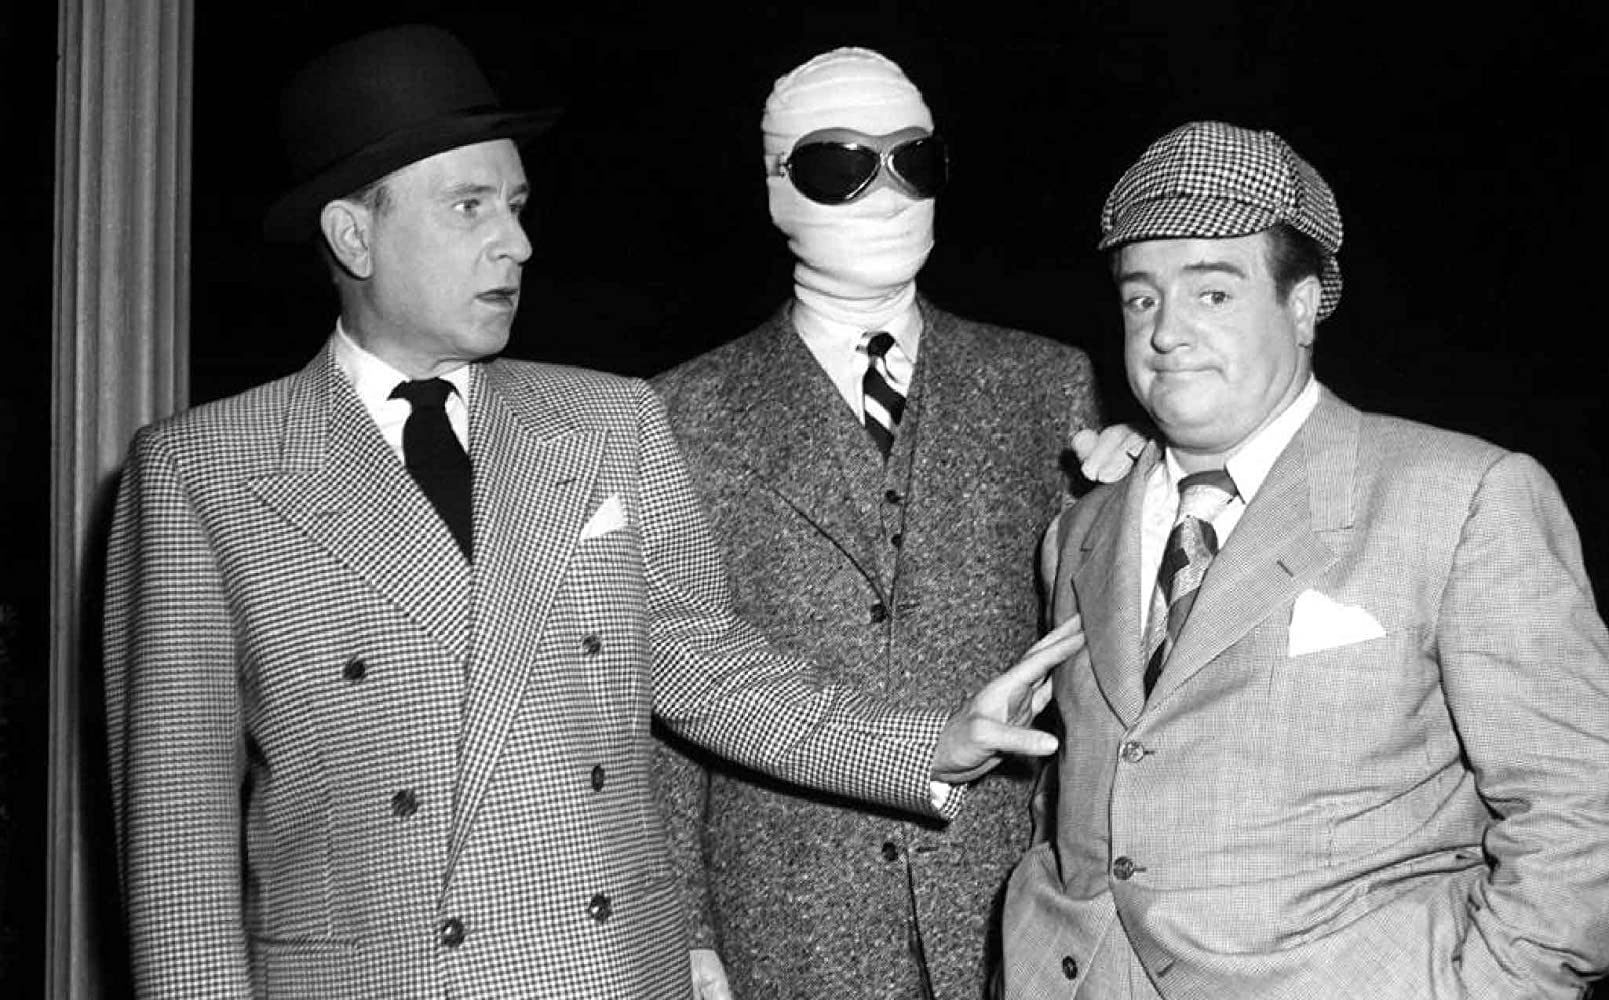 bud abbott lou costello meet the invisible man 1951